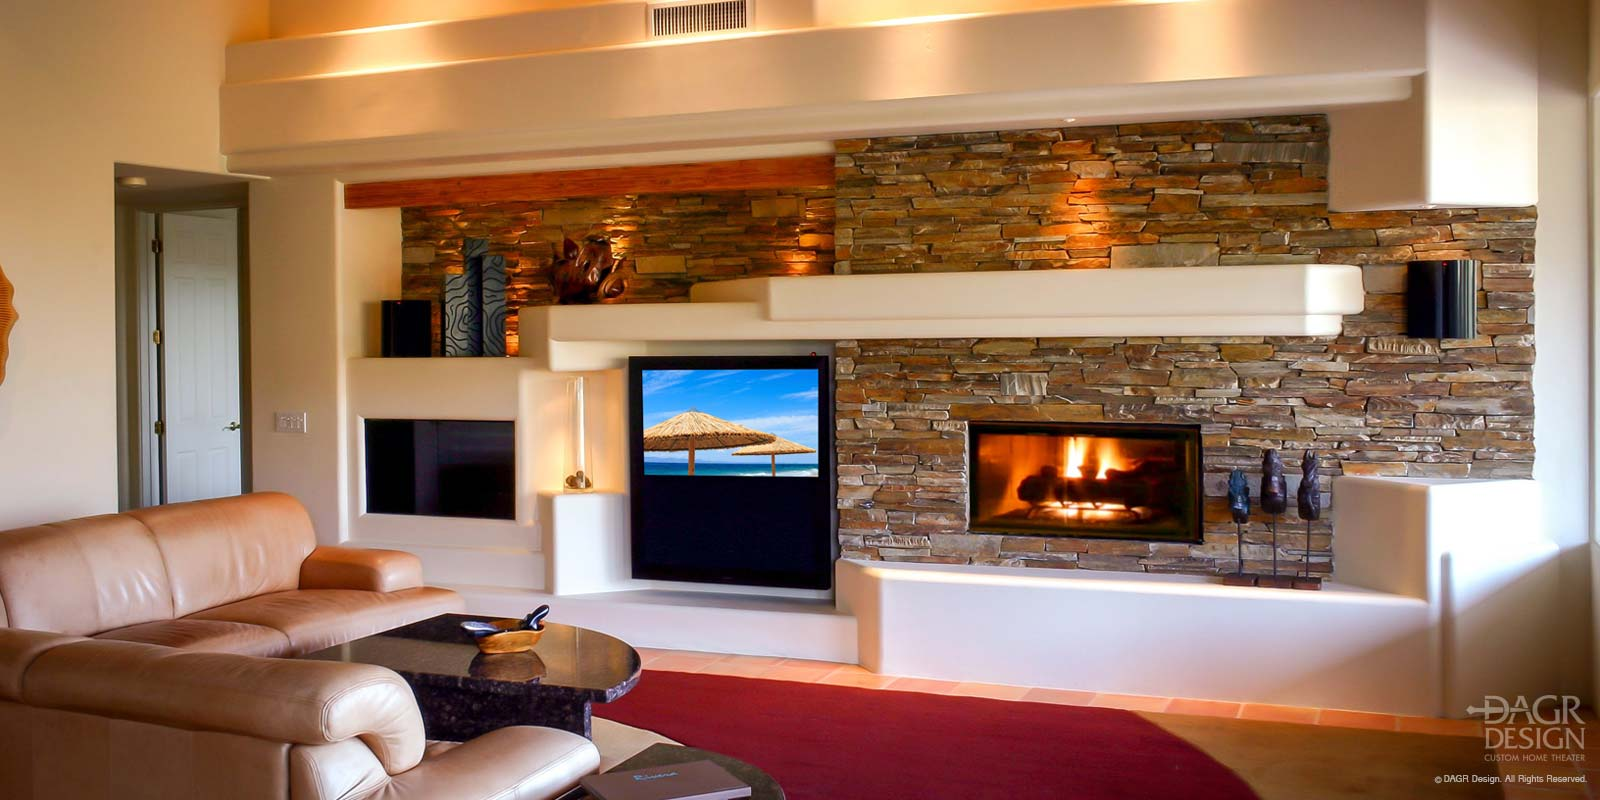 Custom drywall entertainment center with stacked stone walls, decorative lighted display shelves, and fireplace custom designed and installed by DAGR Design